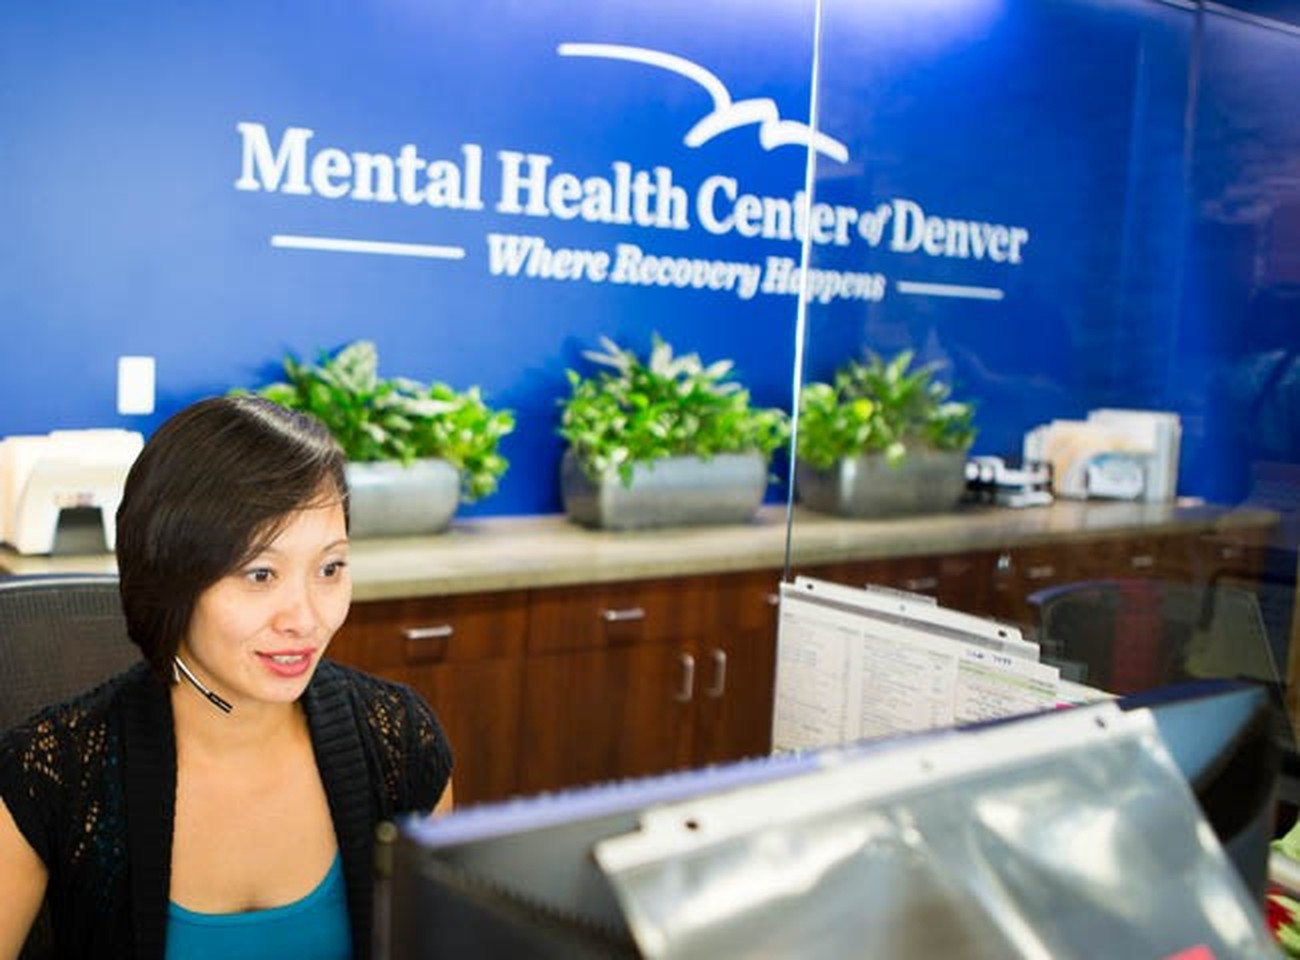 Mental Health Center of Denver Careers